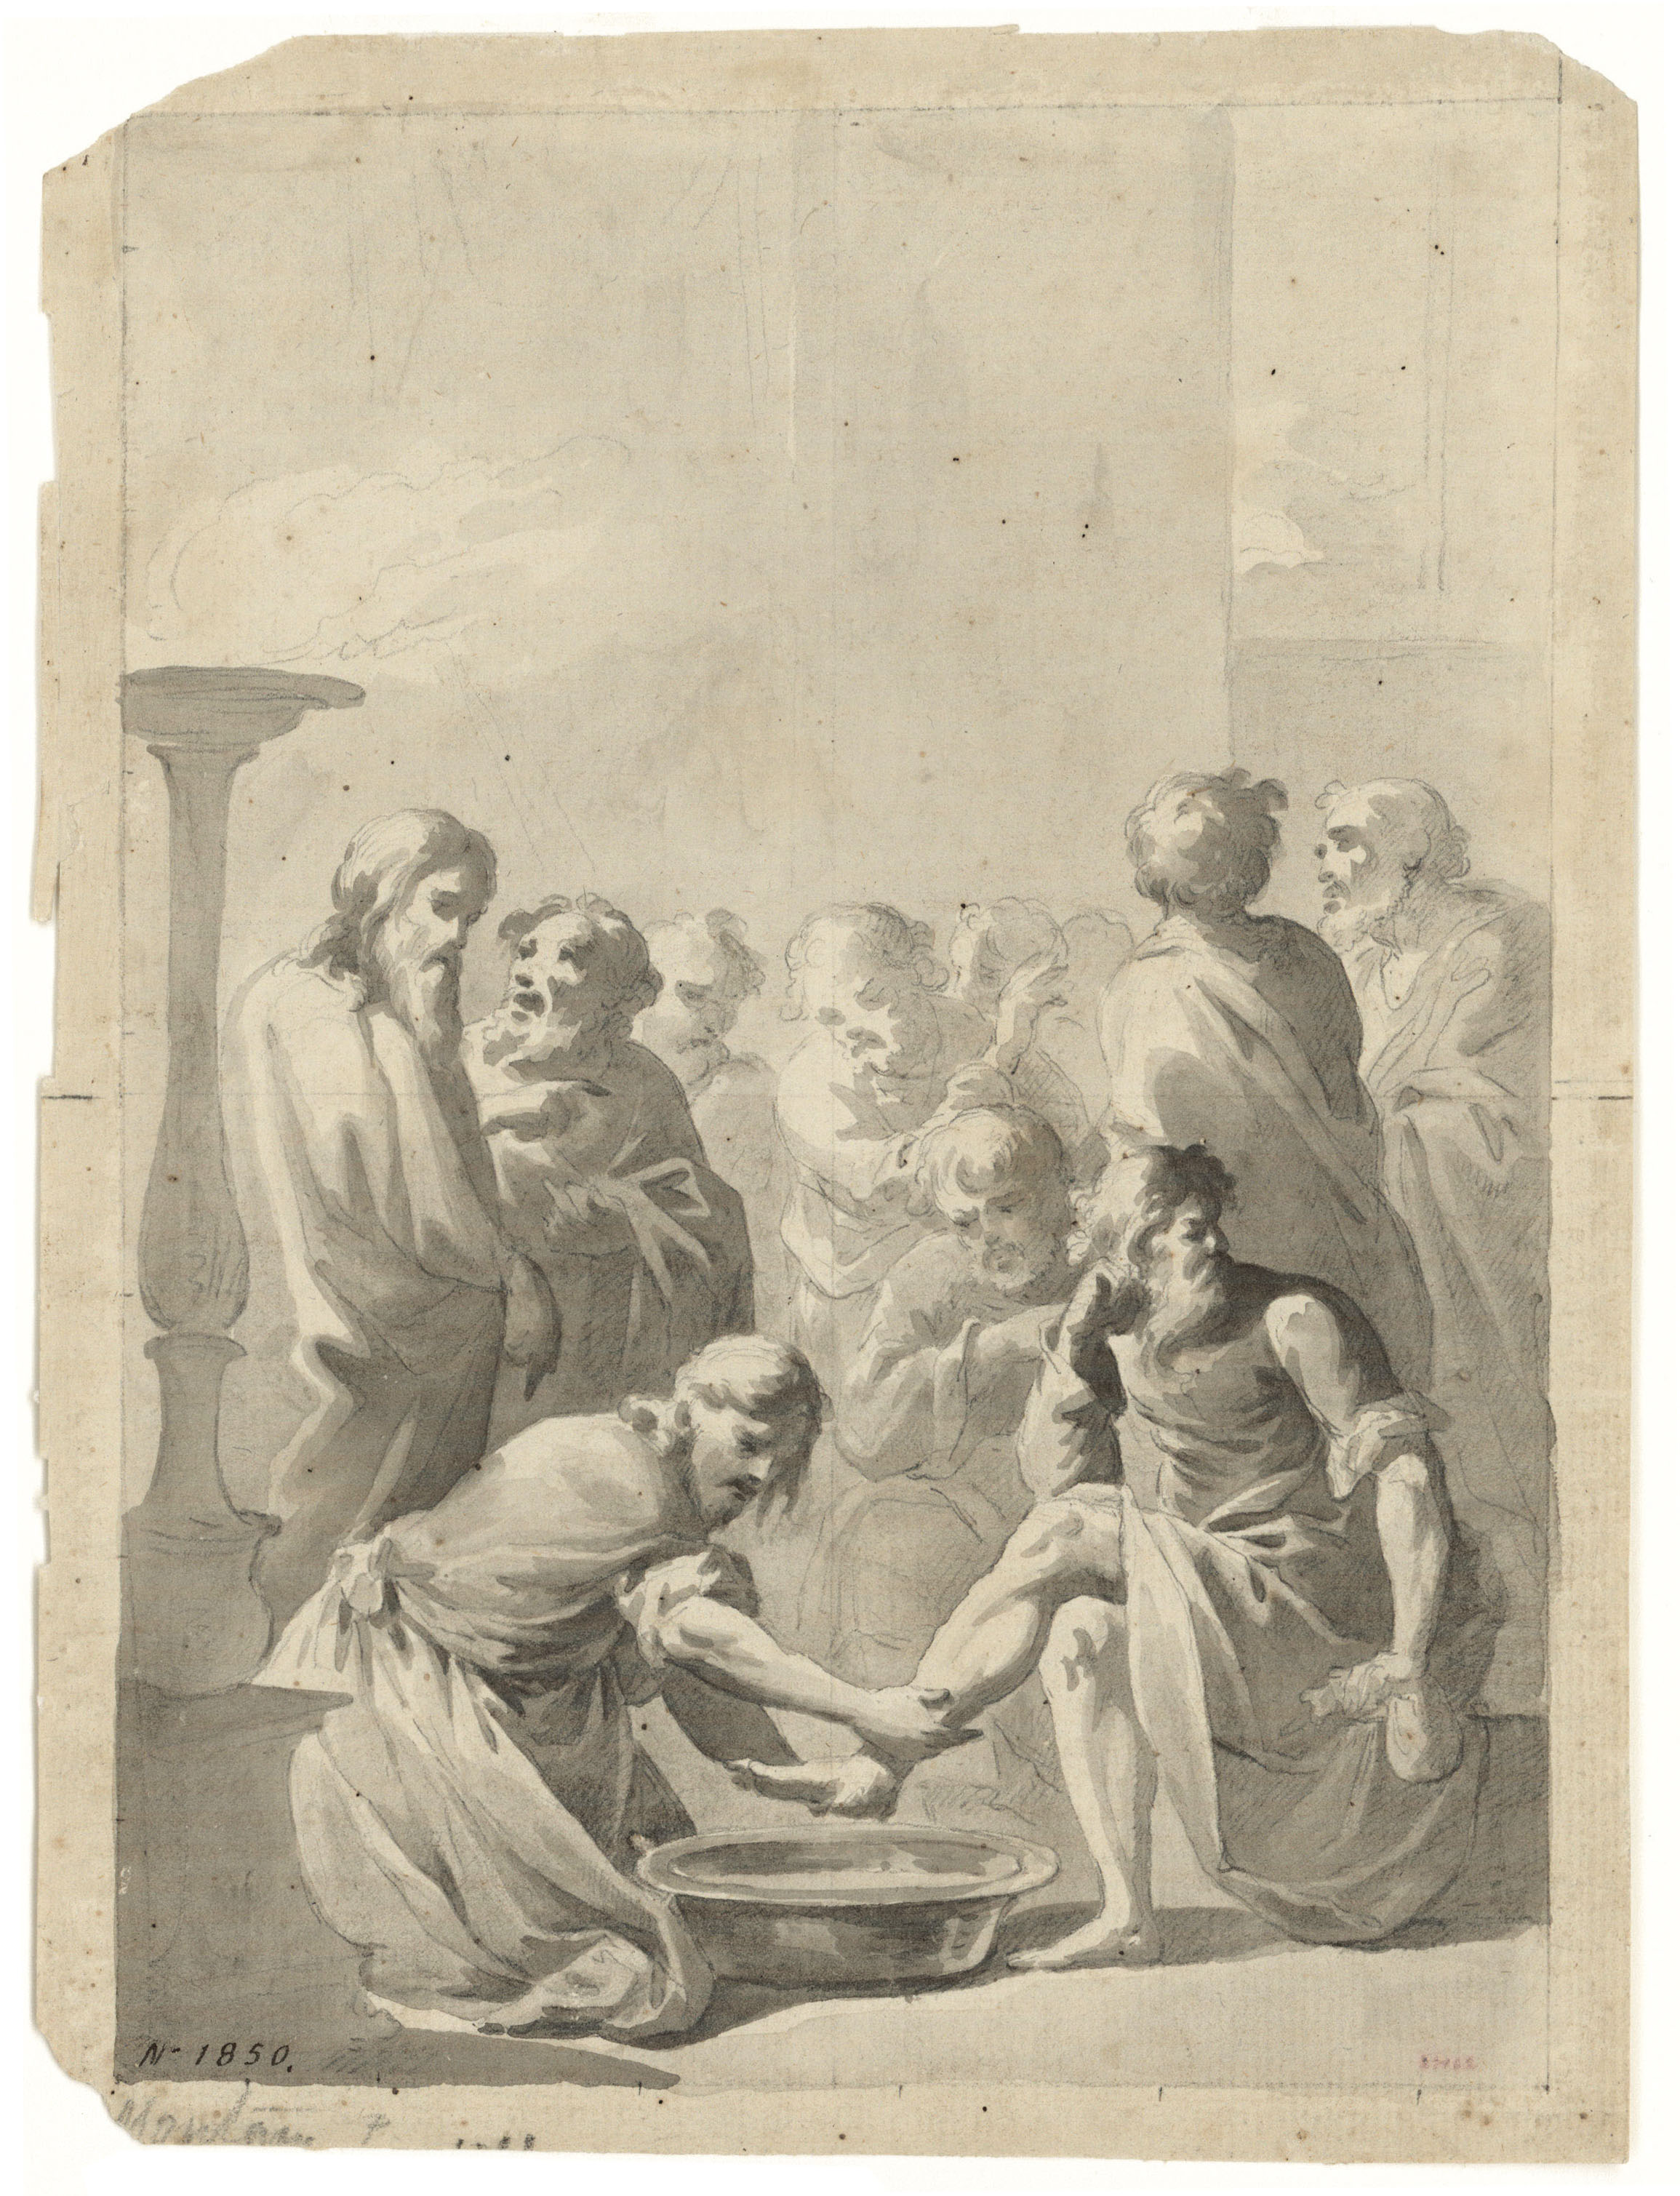 Pere Pau Montaña Llanas, The Washing of the Feet, 1780. Work not on display